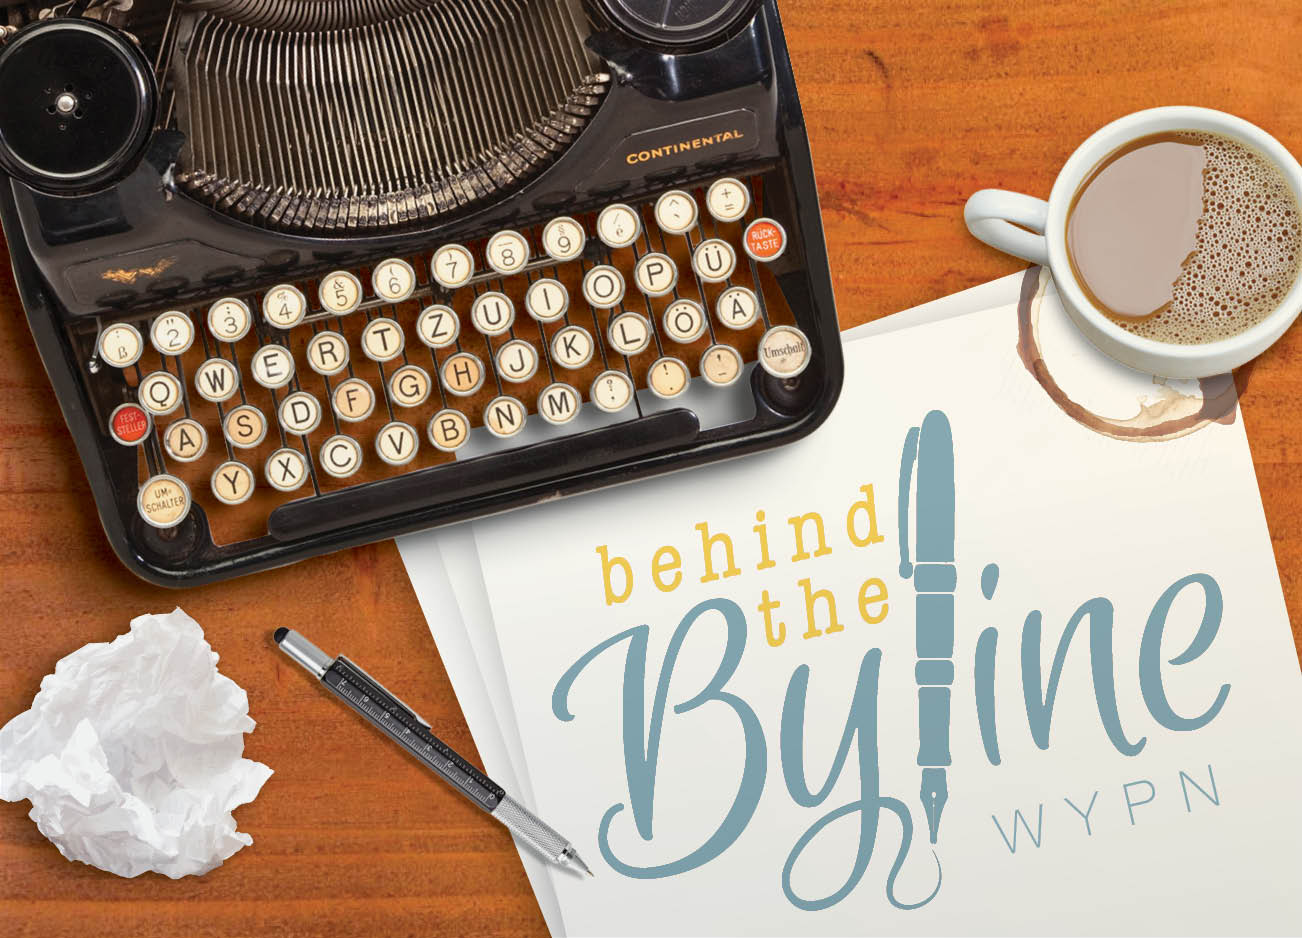 Introducing Behind the Byline